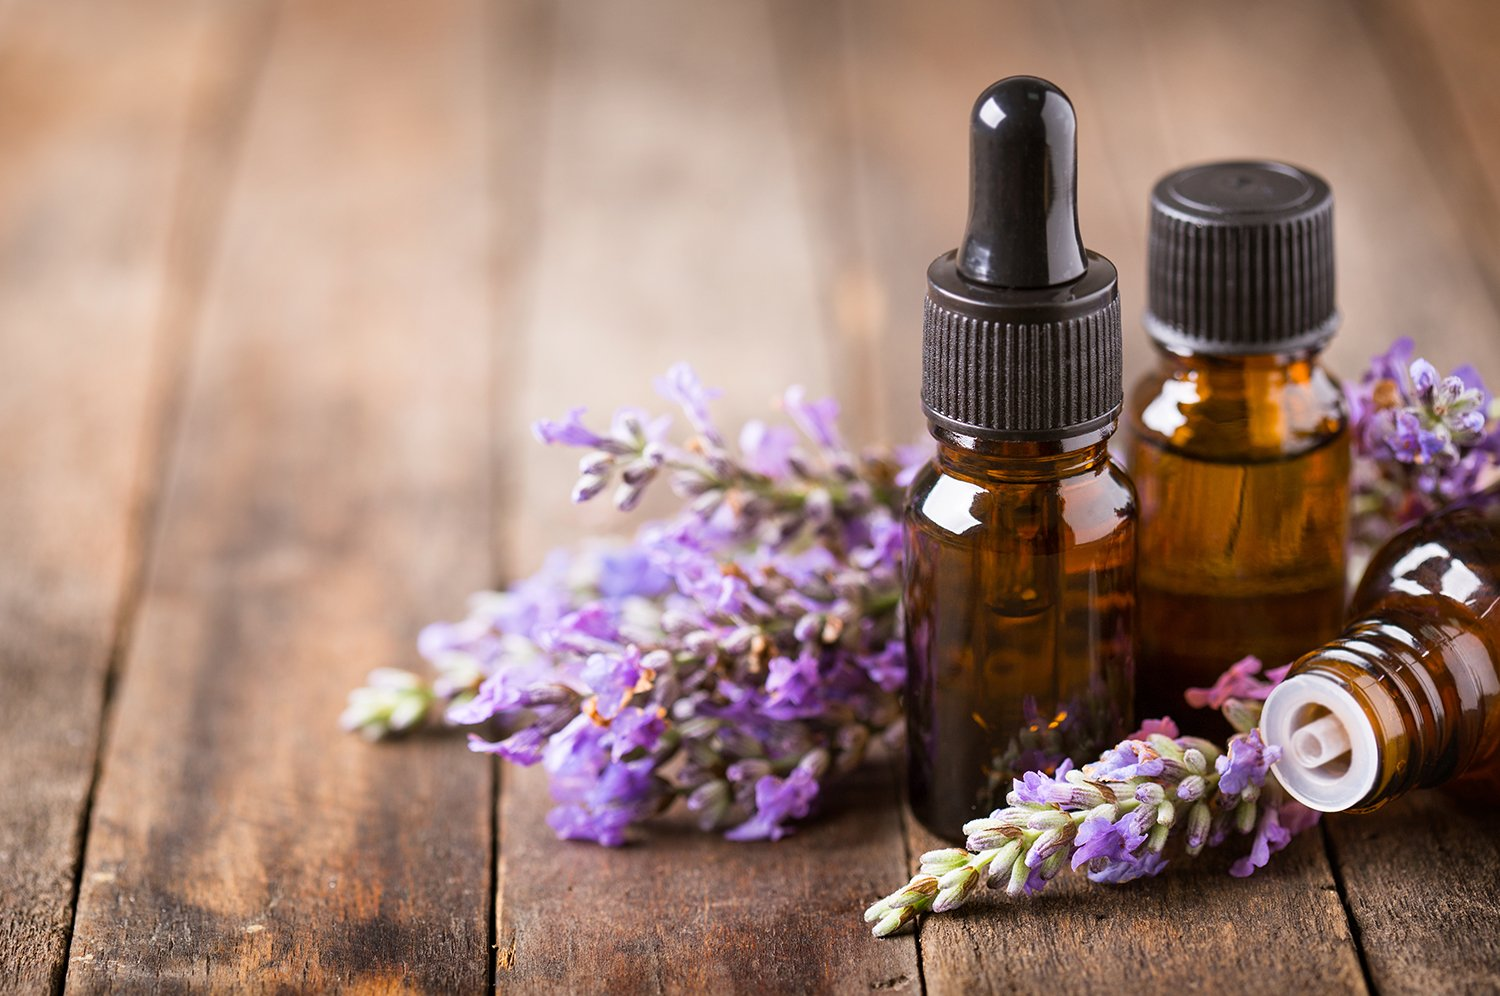 7 essential oils to help soothe seniors and how to use them